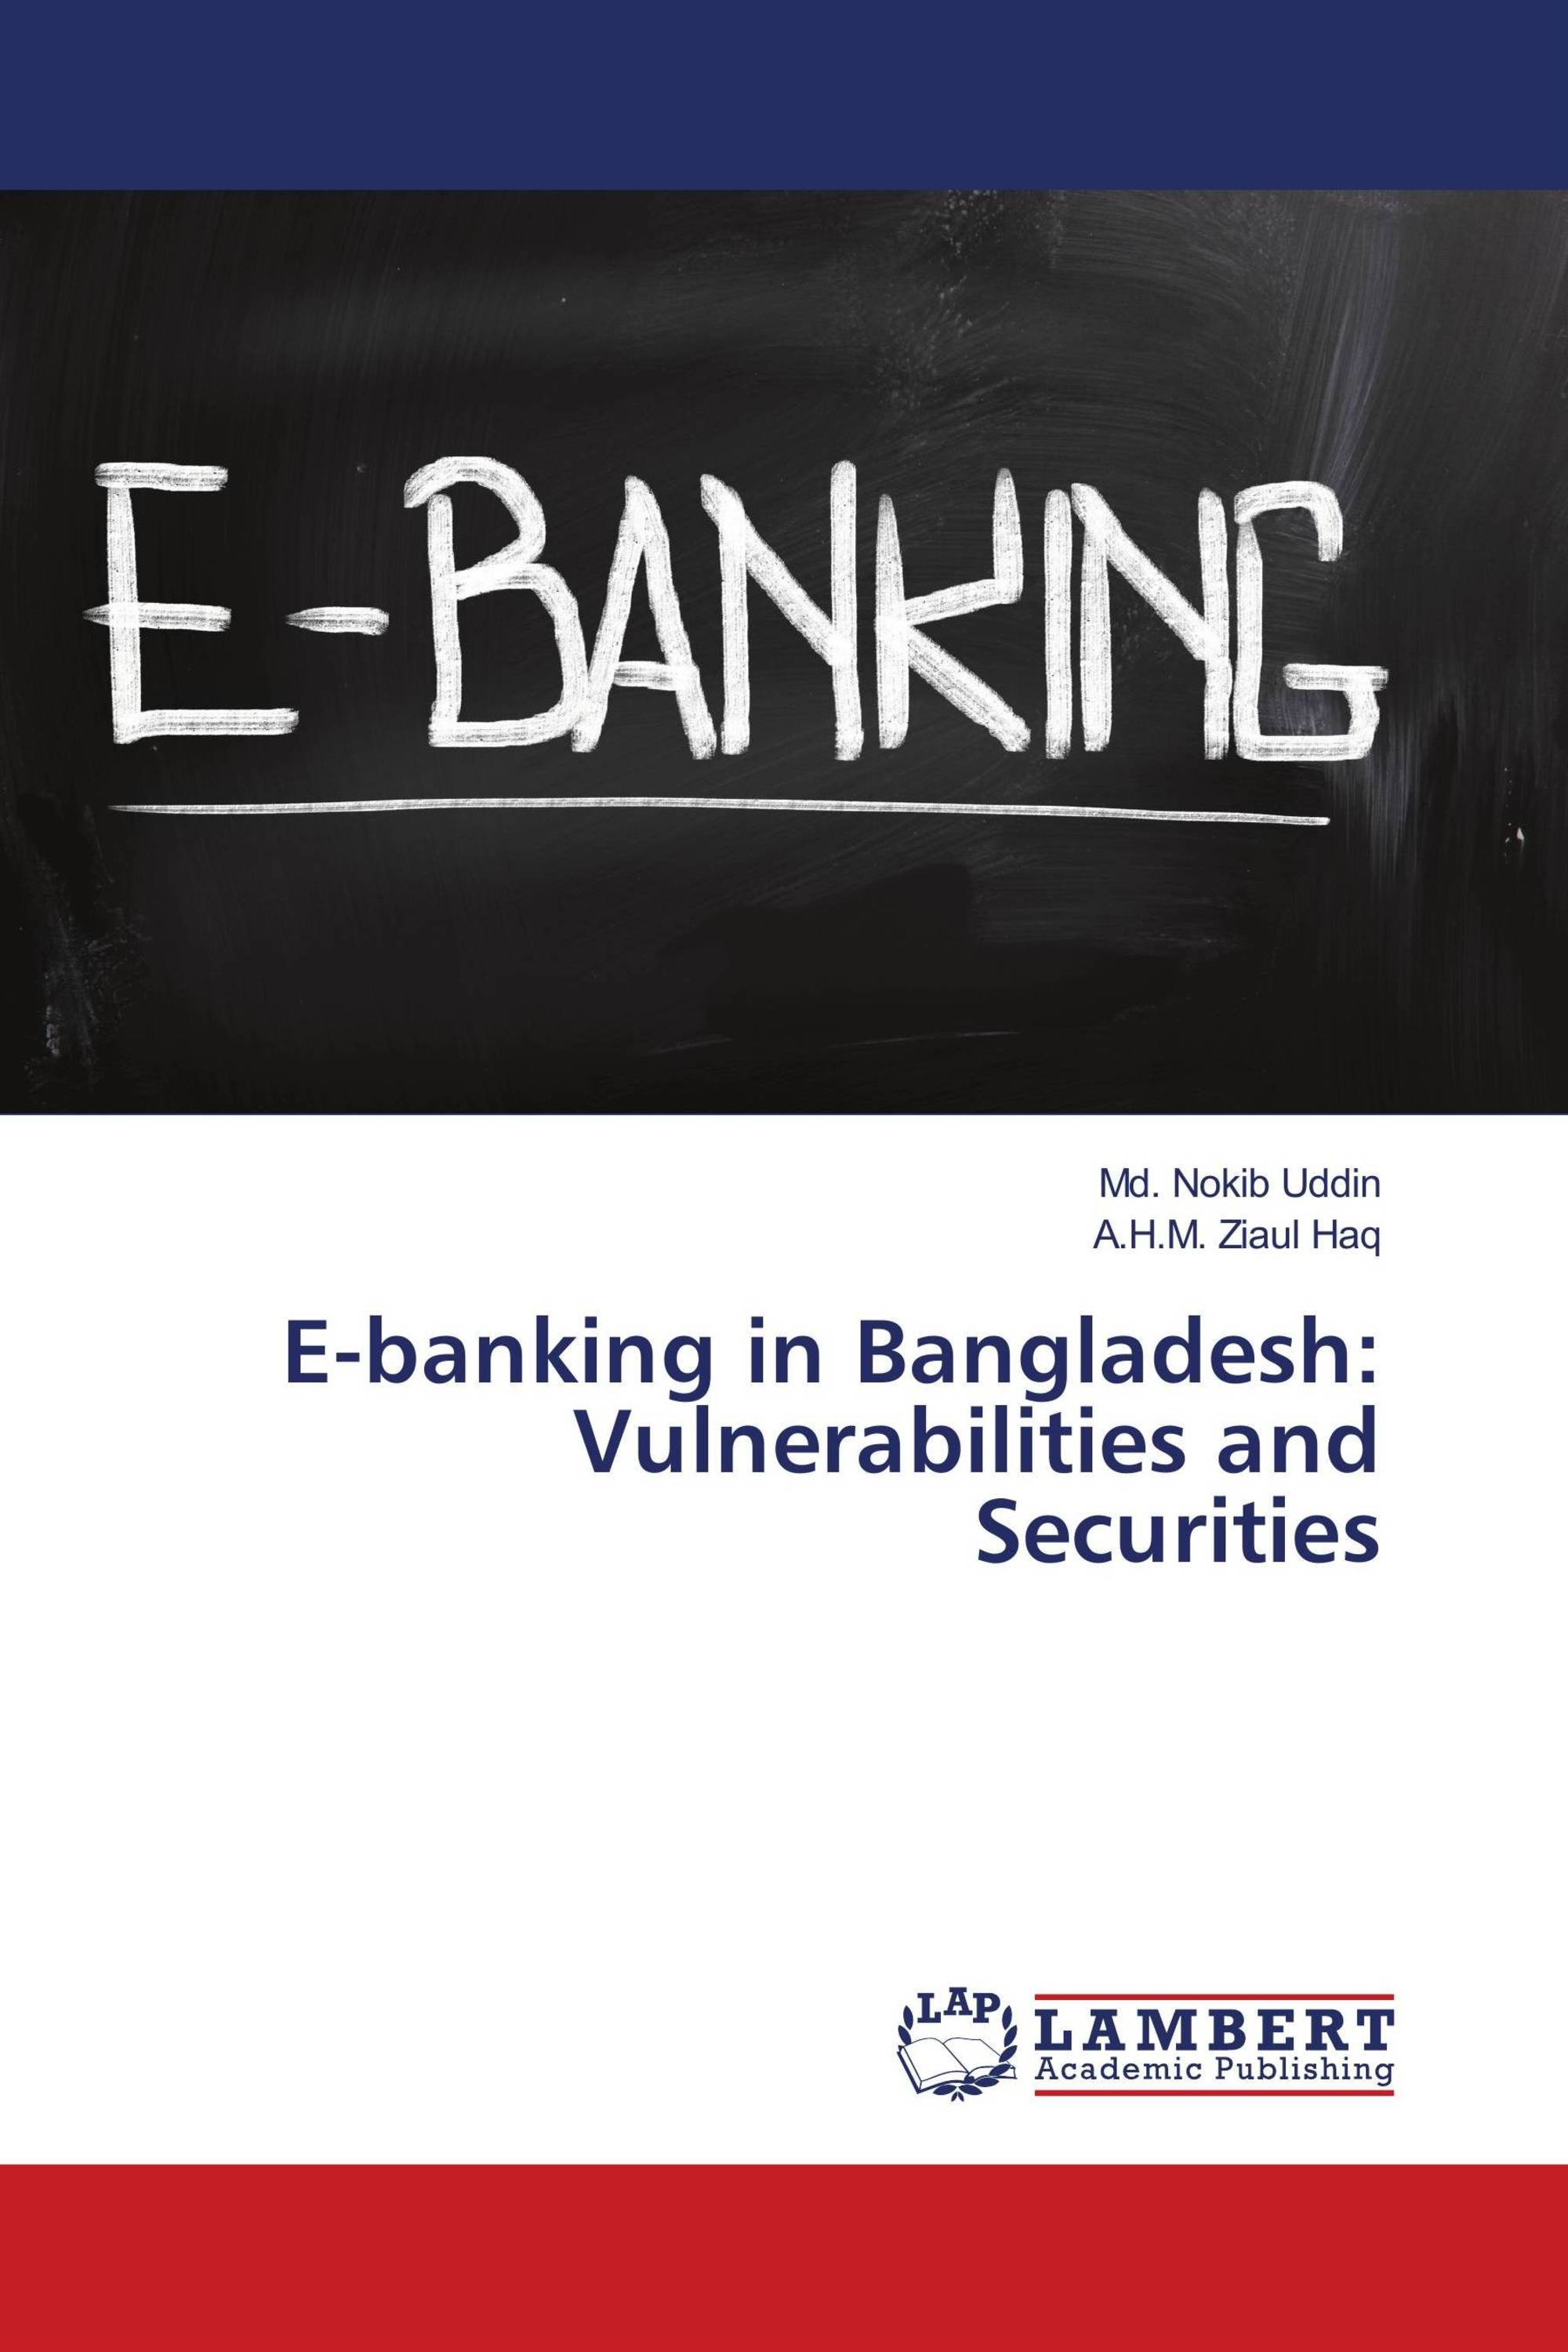 thesis on mobile banking in bangladesh